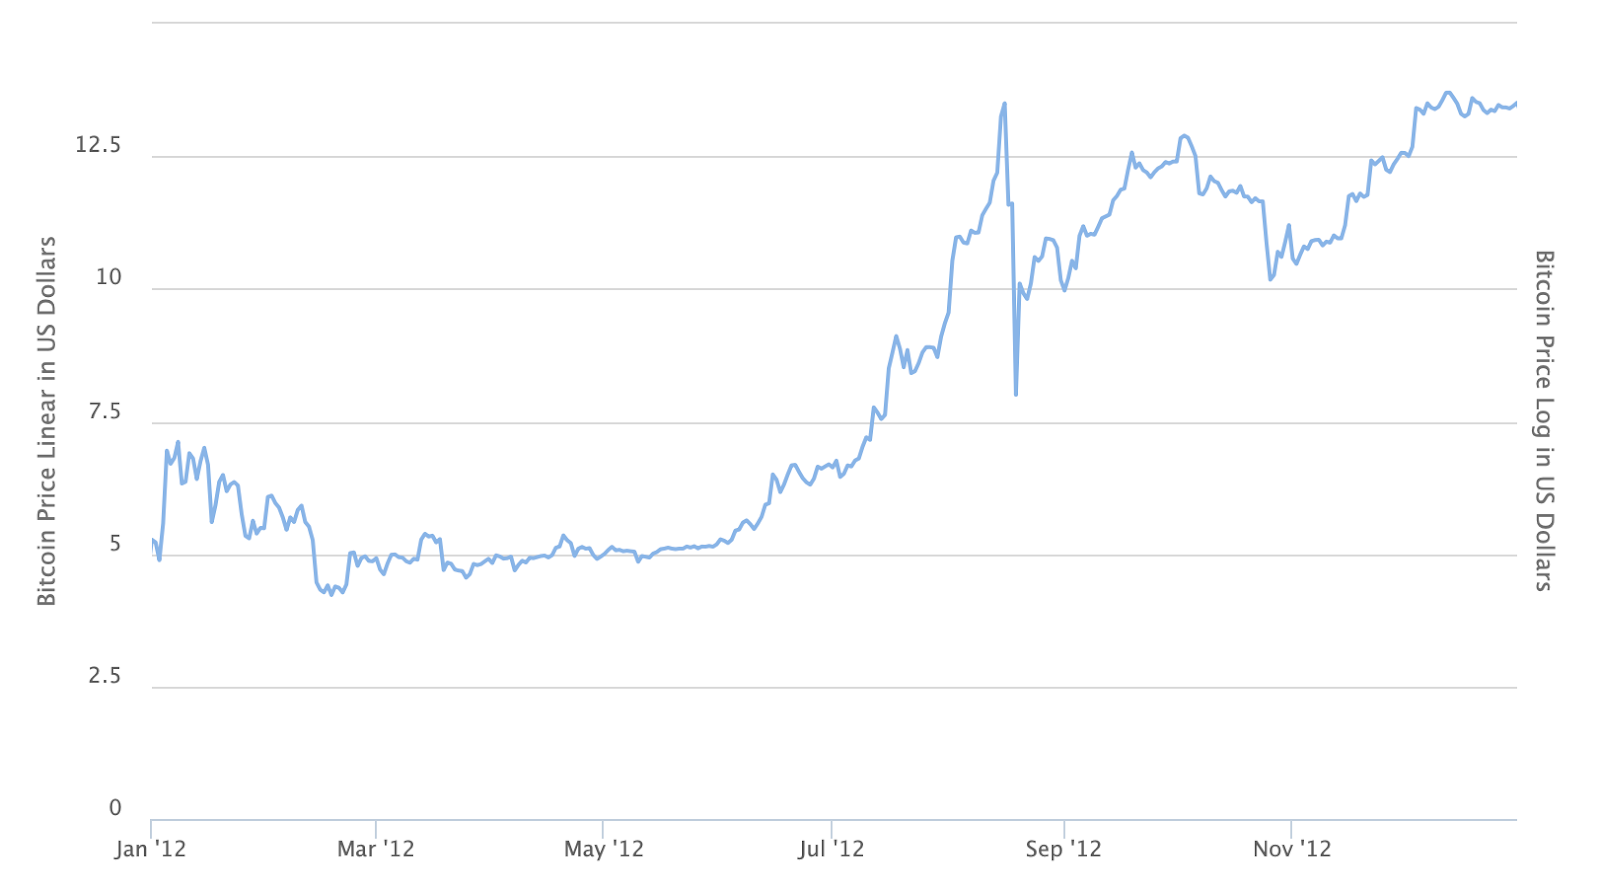 Bitcoin price in 2012